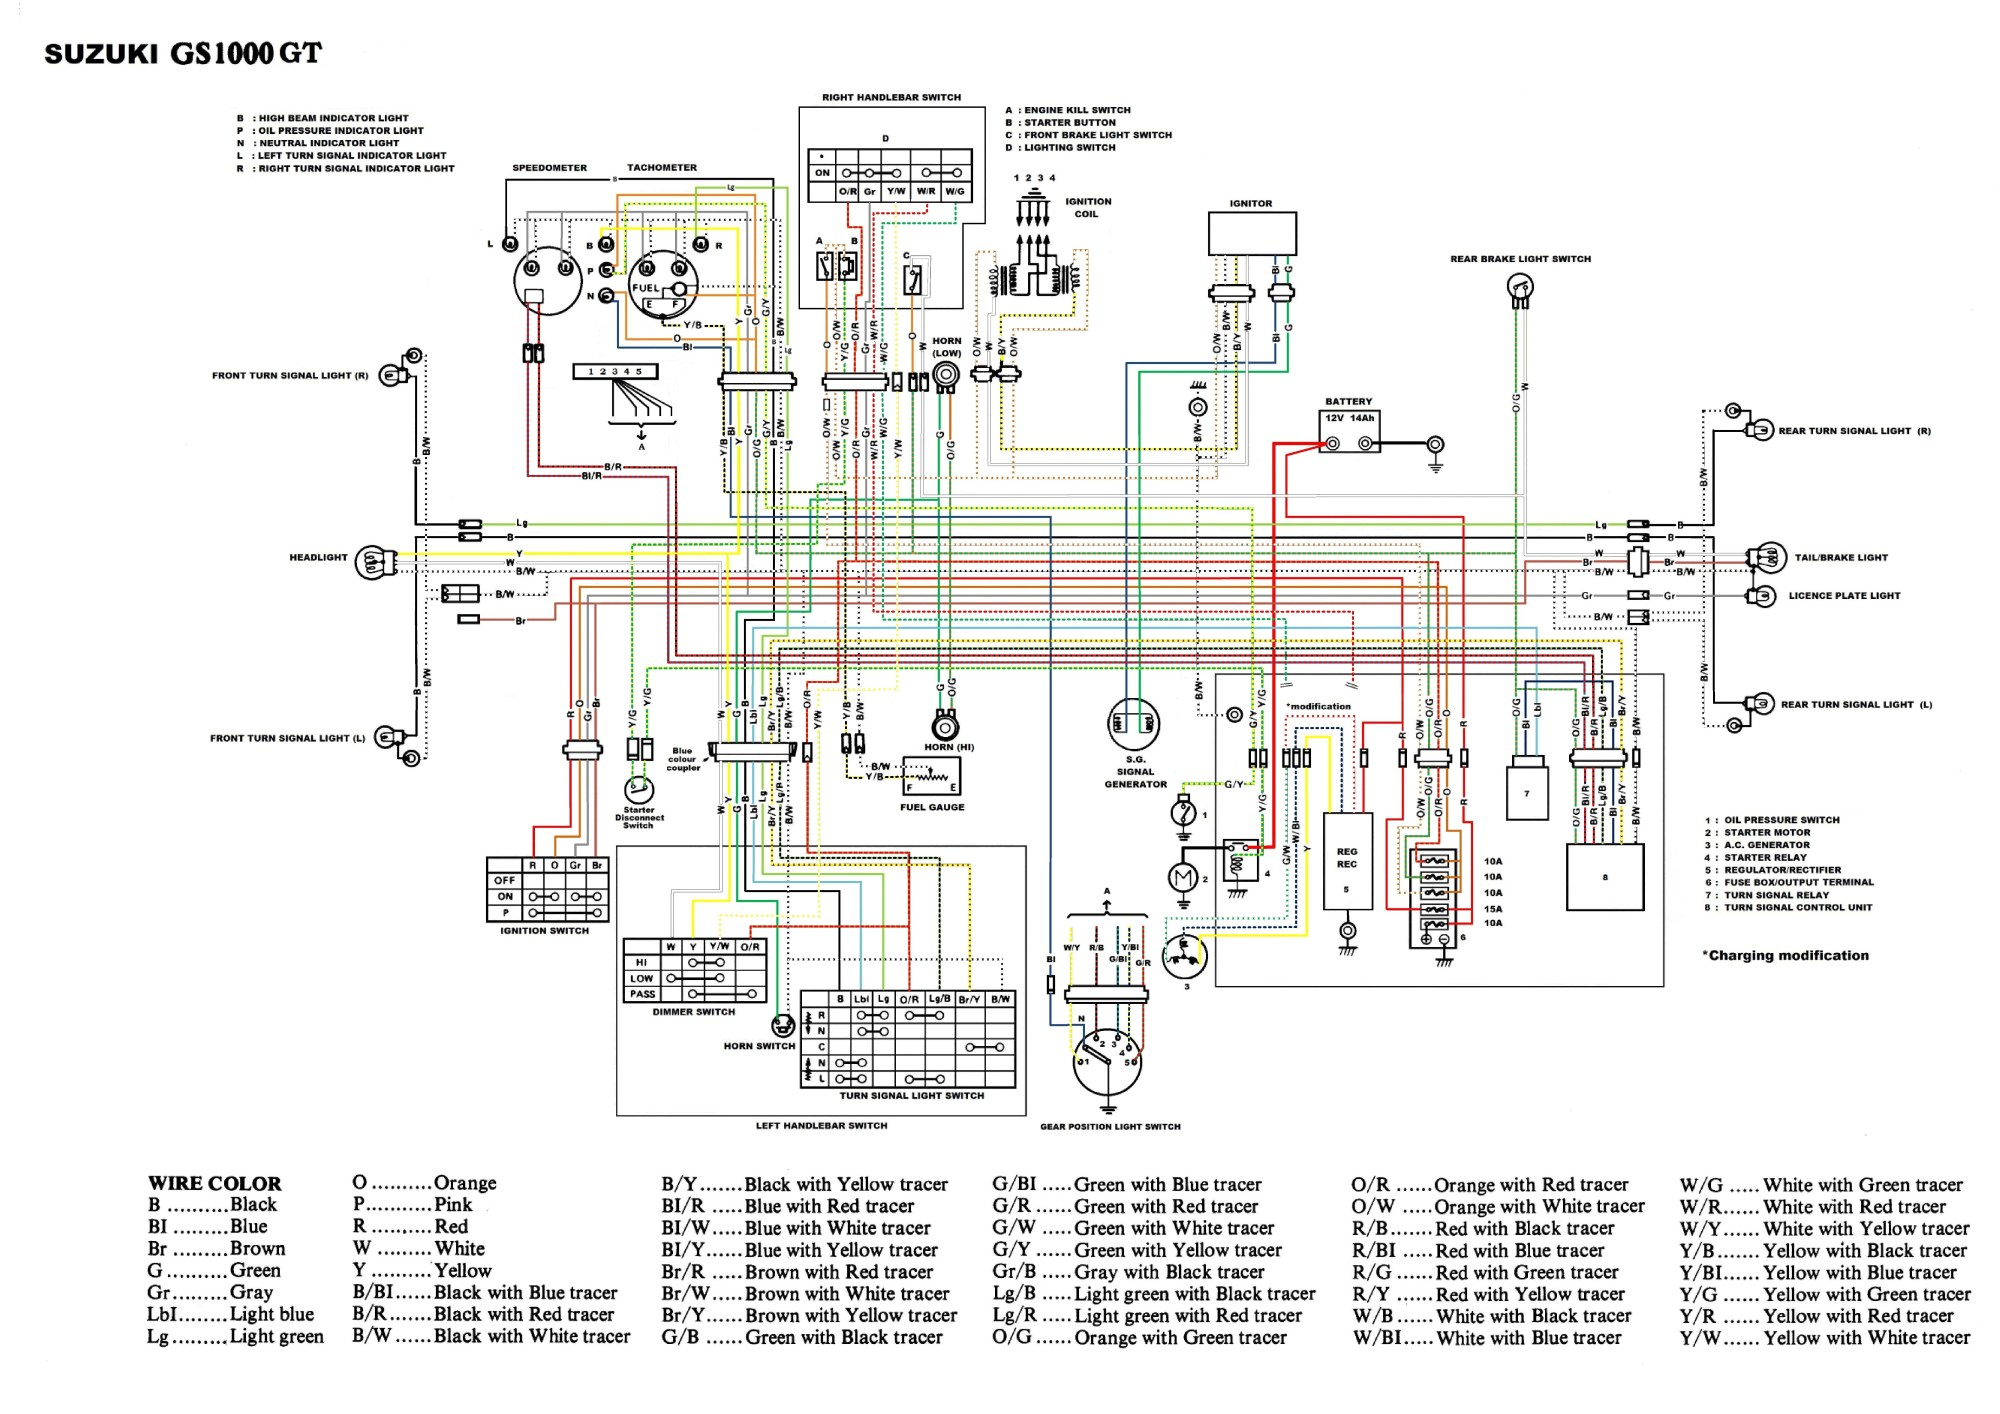 hight resolution of vz800 wiring diagram wiring diagram ebooksuzuki vz800 wiring diagram wiring diagram g9suzuki vz800 wiring diagram wiring